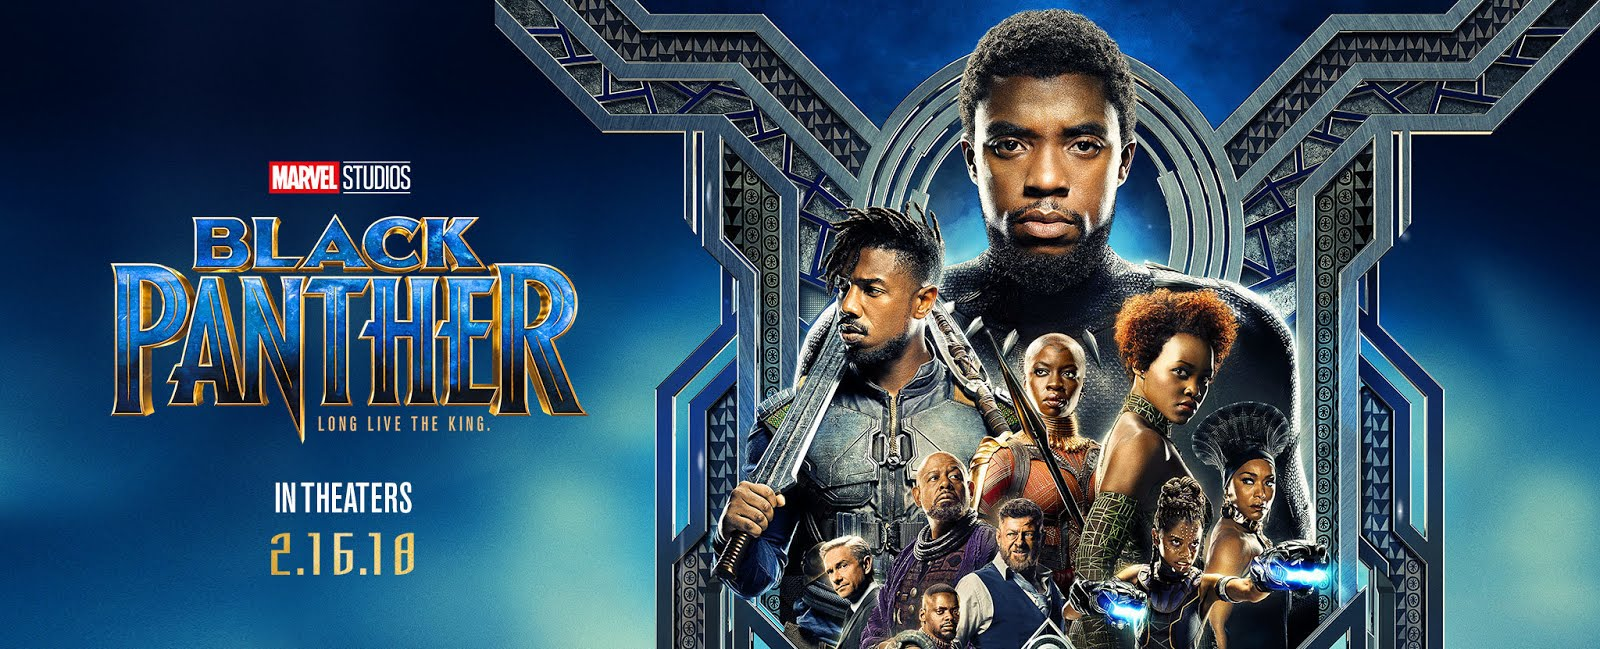 Black Panther Full Movie Download In HD (2018) 720p BluRay ...